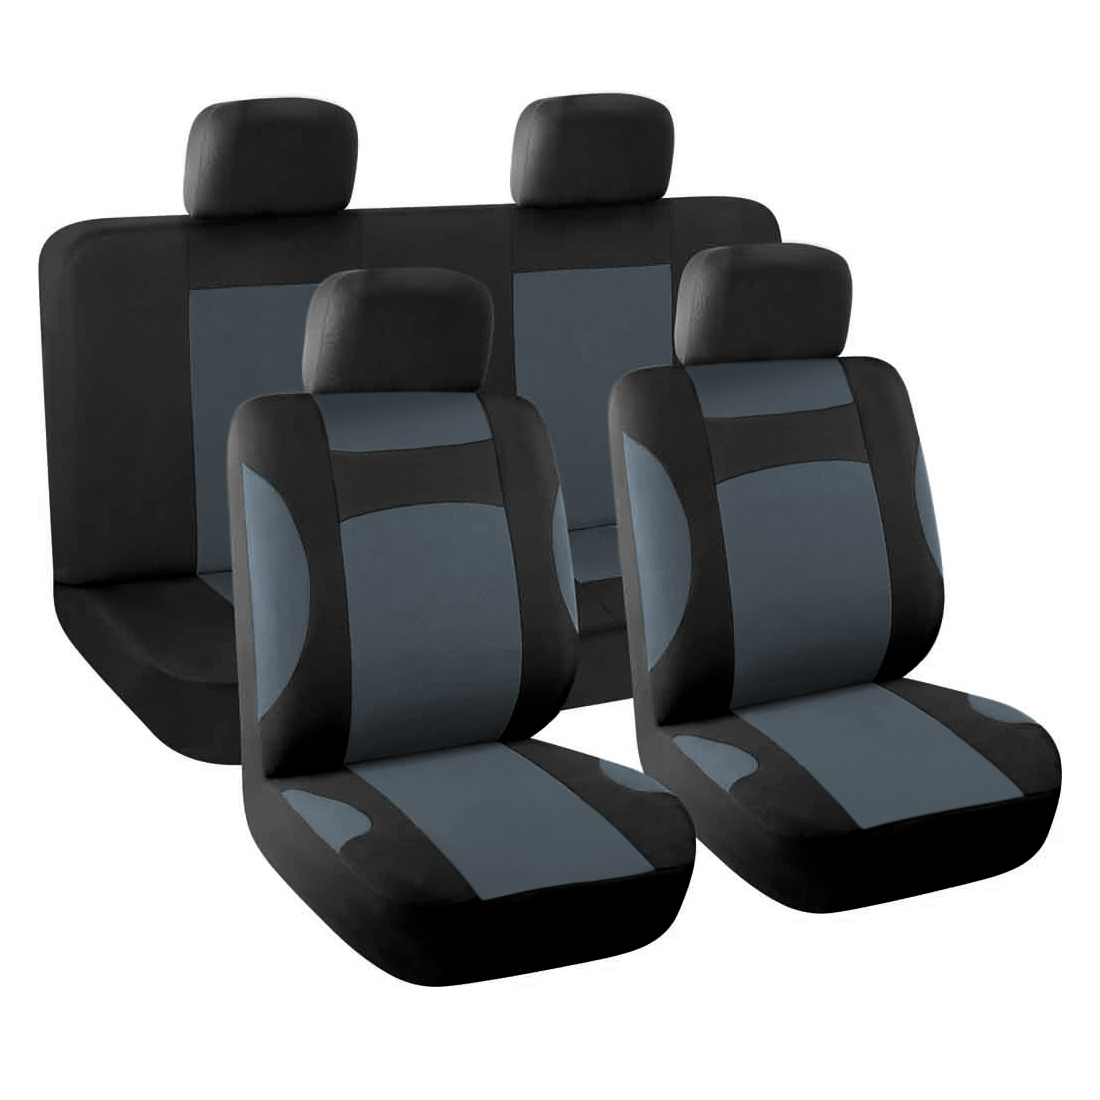 New Car Seat Covers Full Set for Auto w/ 4 Head Rests Gray